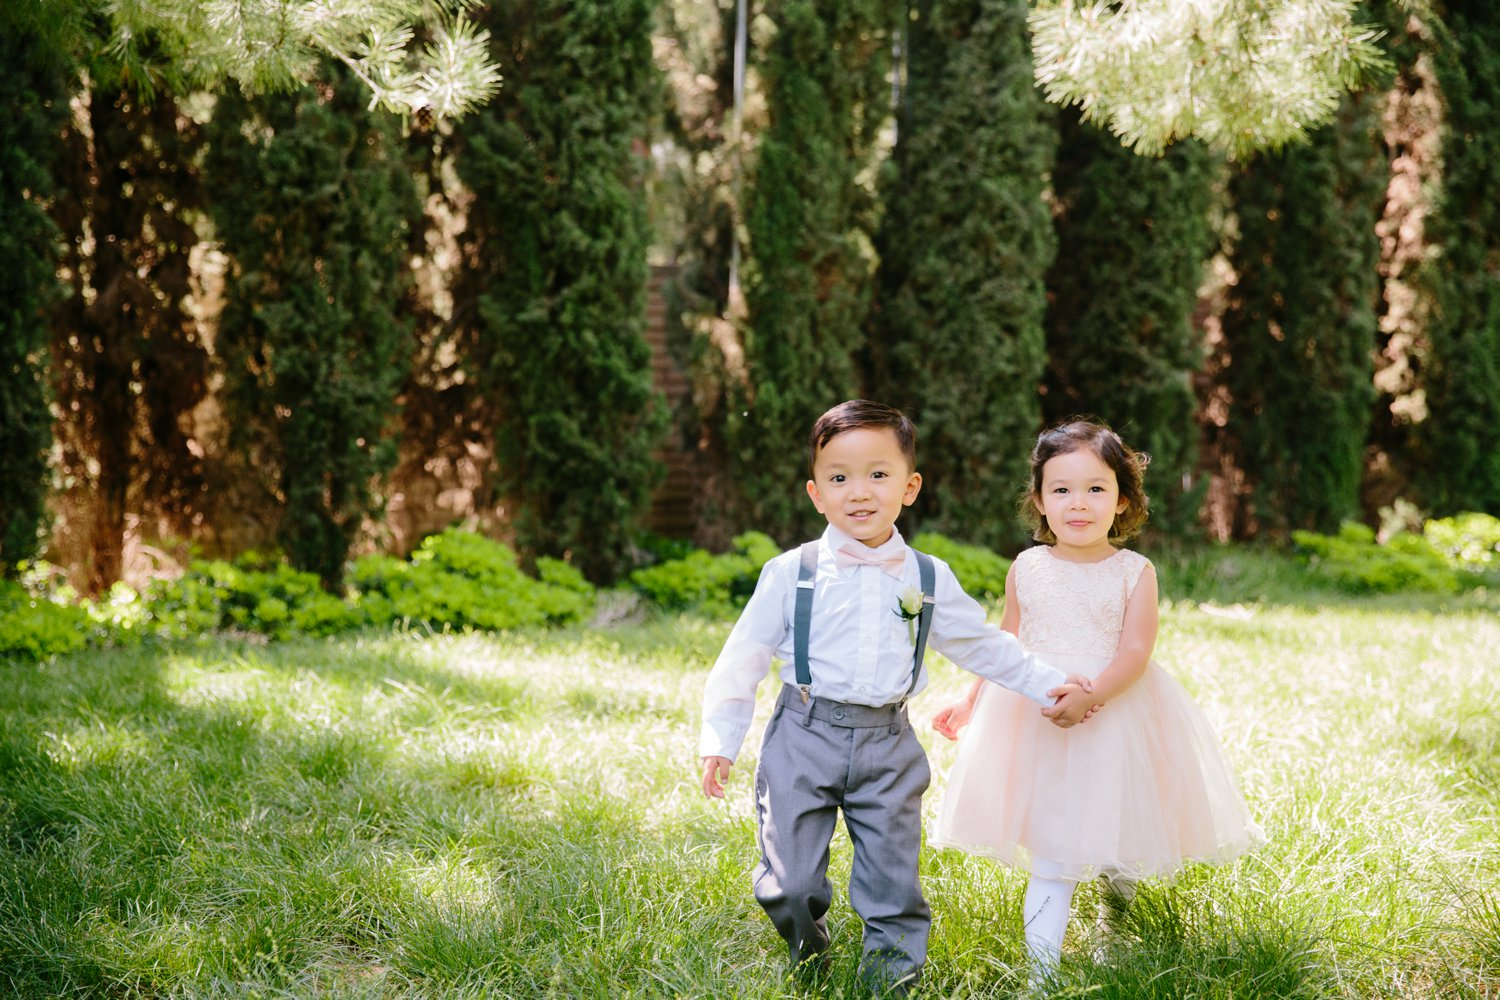 Irvine Wedding Kevin Le Vu Photography- 14.jpg